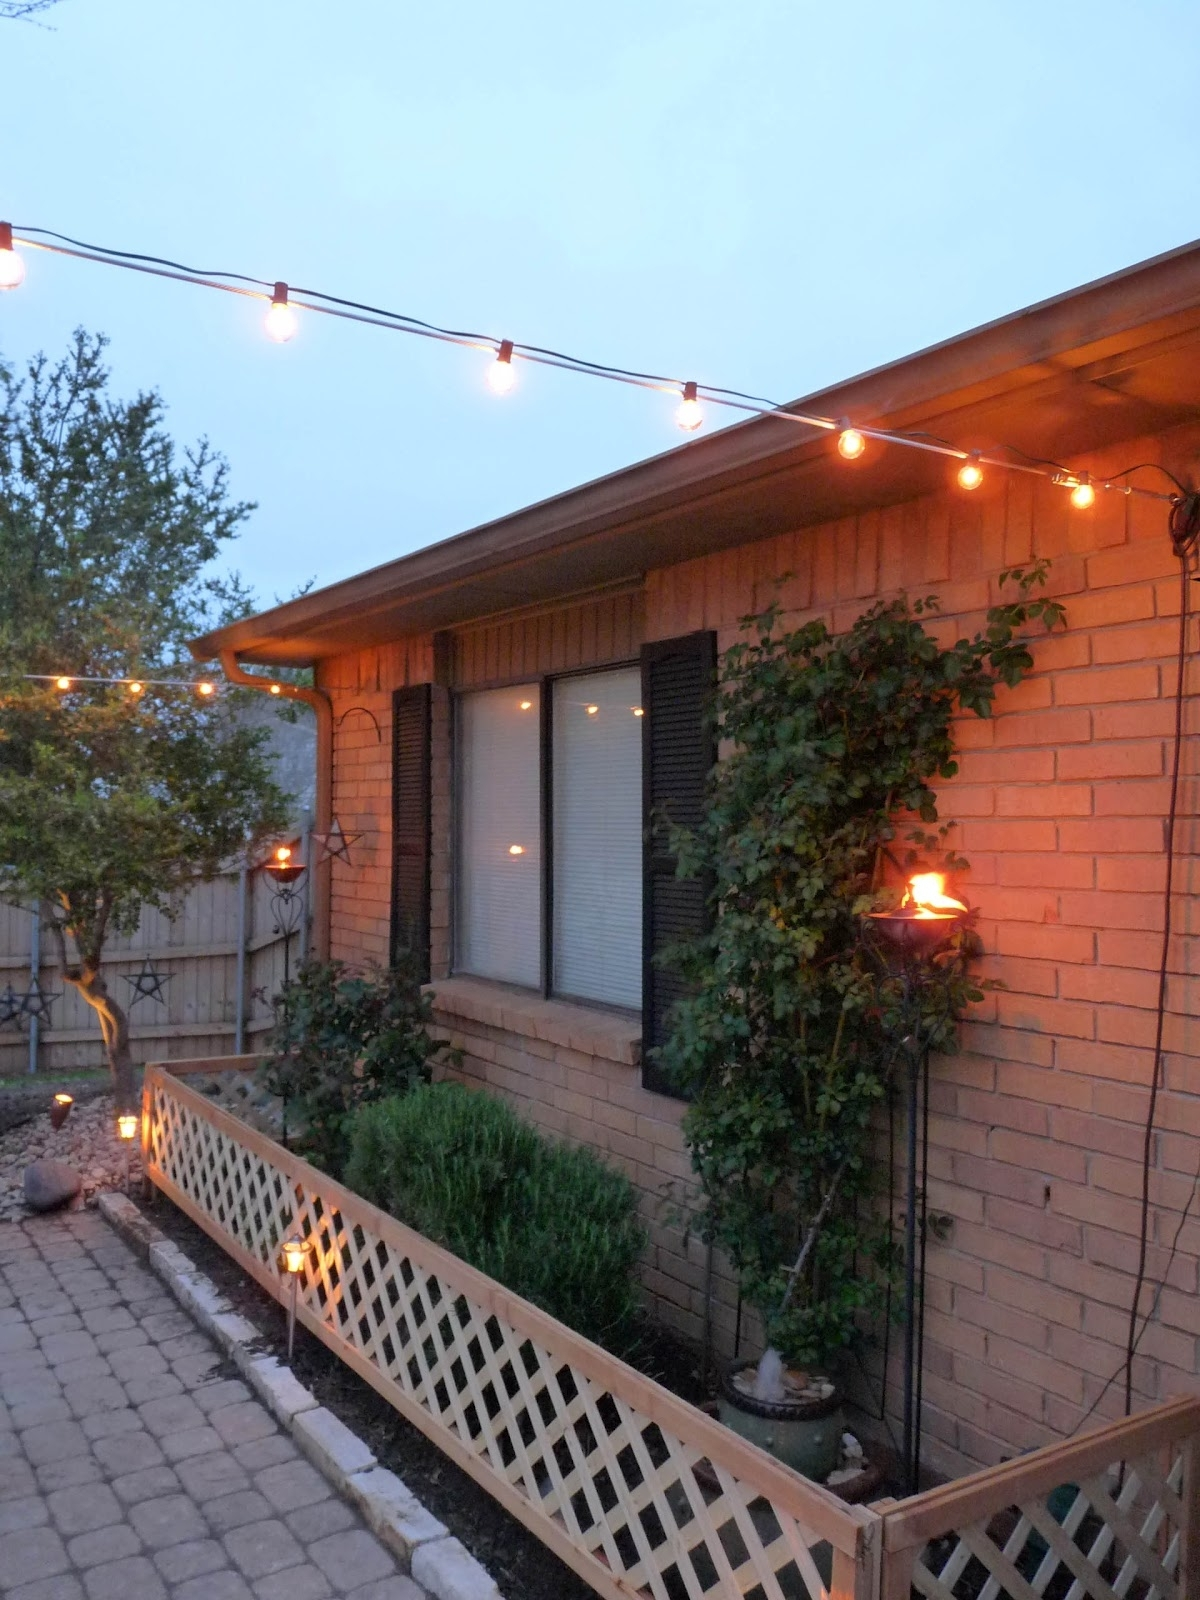 Hanging Outdoor Lights On Fence In Newest The Happy Homebodies: Diy: Stringing Patio Cafe Lights (View 19 of 20)